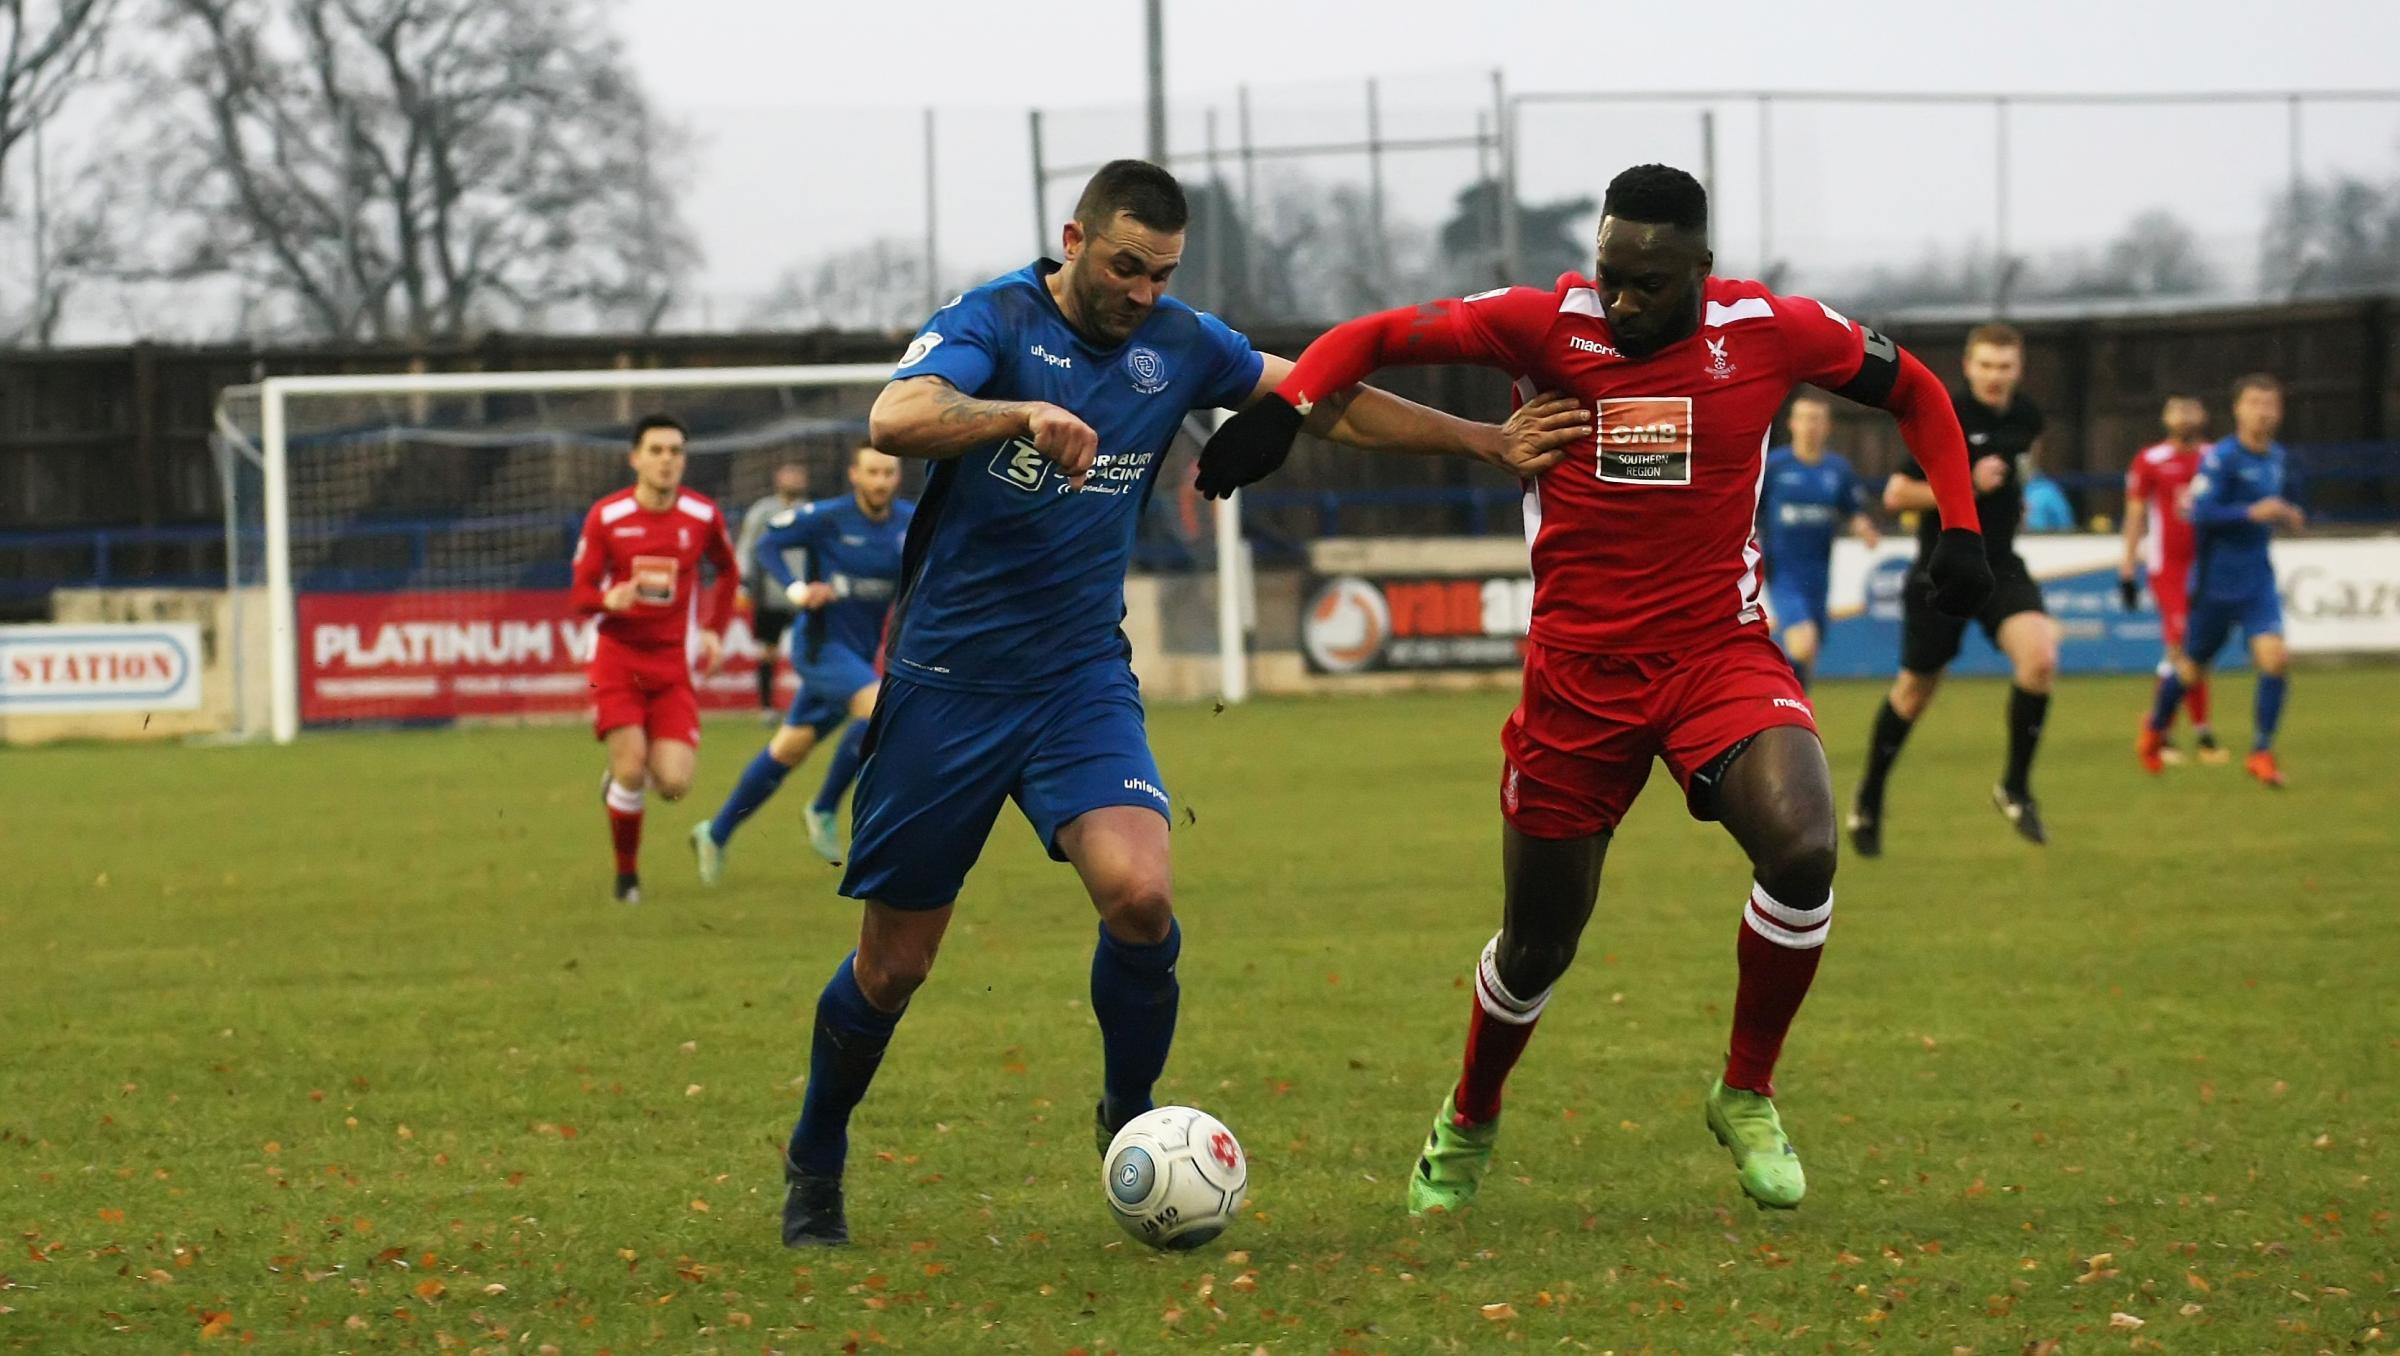 Chippenham Town striker Andy Sandell (blue) looks to cause problems for the Whitehawk defence during his side's 2-1 home victory in National League South on Saturday. PICTURE: ROBIN FOSTER